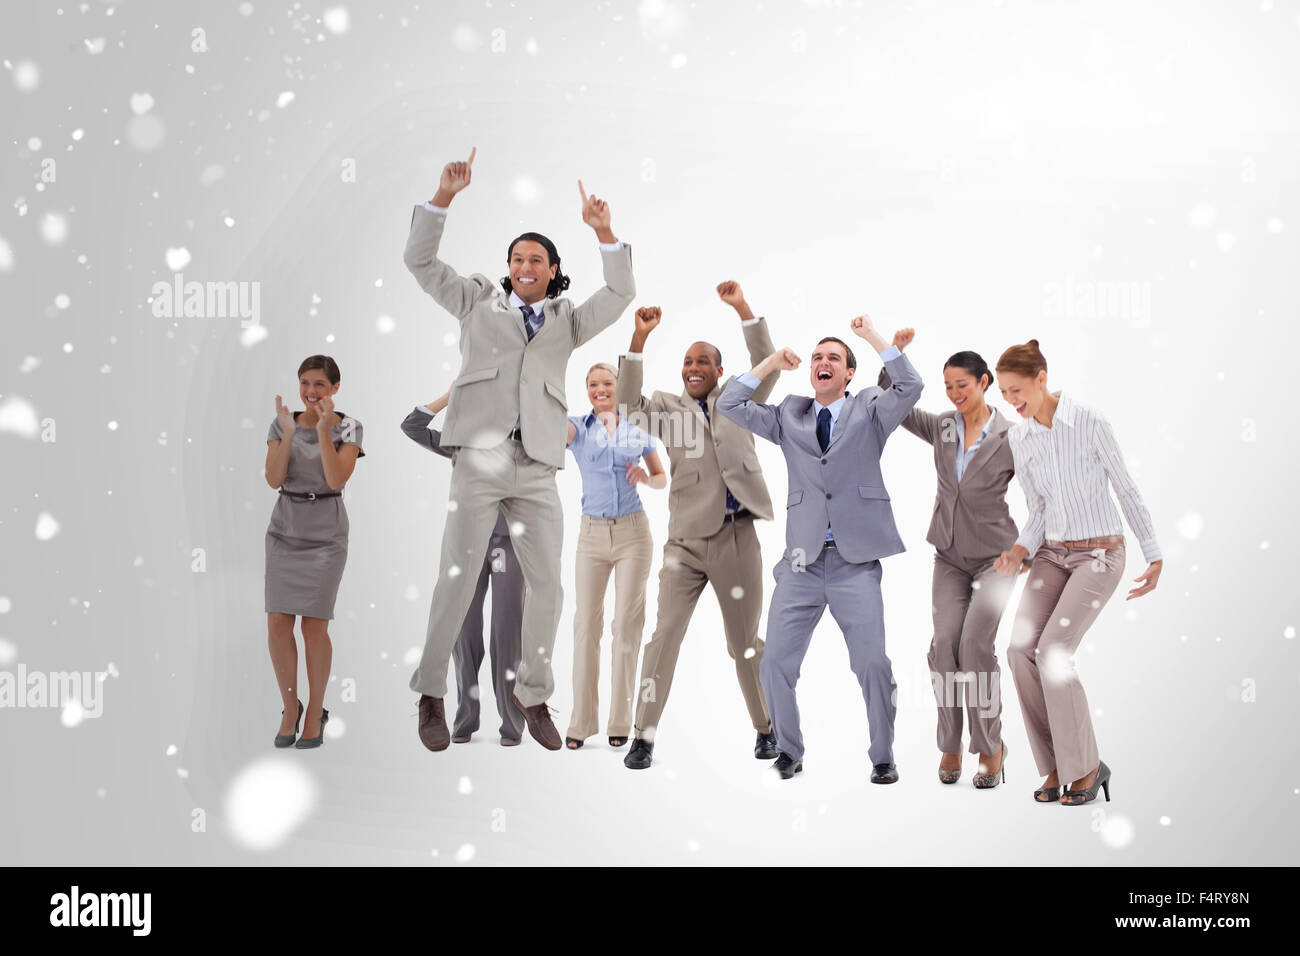 Composite image of very enthusiast business people jumping and raising their arms - Stock Image